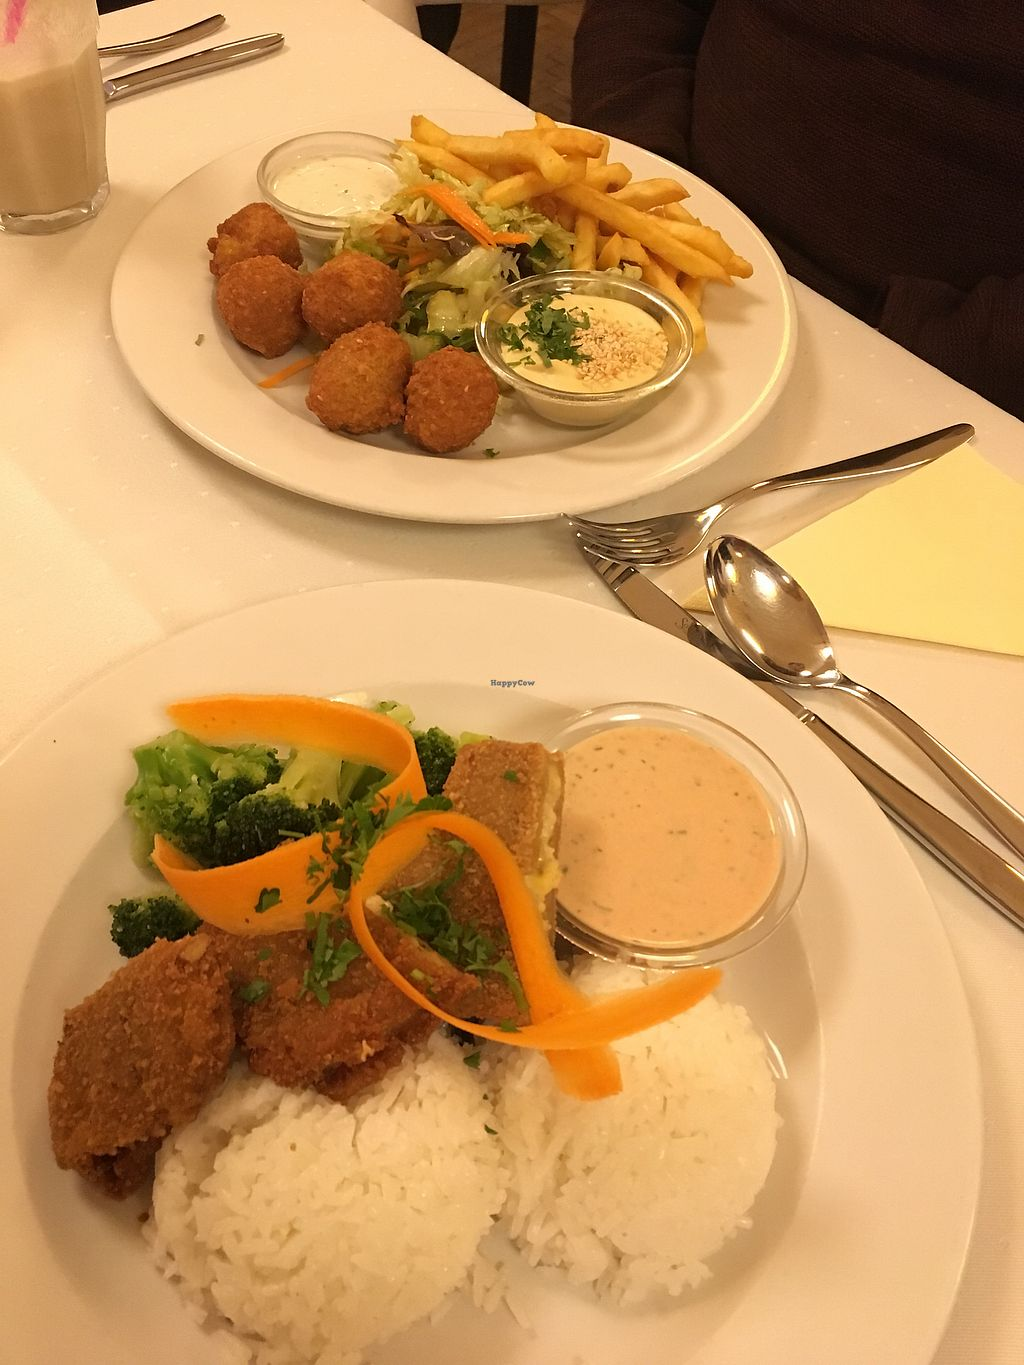 """Photo of Napfenyes Restaurant and Pastry Shop  by <a href=""""/members/profile/mnap"""">mnap</a> <br/>Seitan kiev (front), falafel platter (in the back) <br/> March 1, 2018  - <a href='/contact/abuse/image/18107/365520'>Report</a>"""